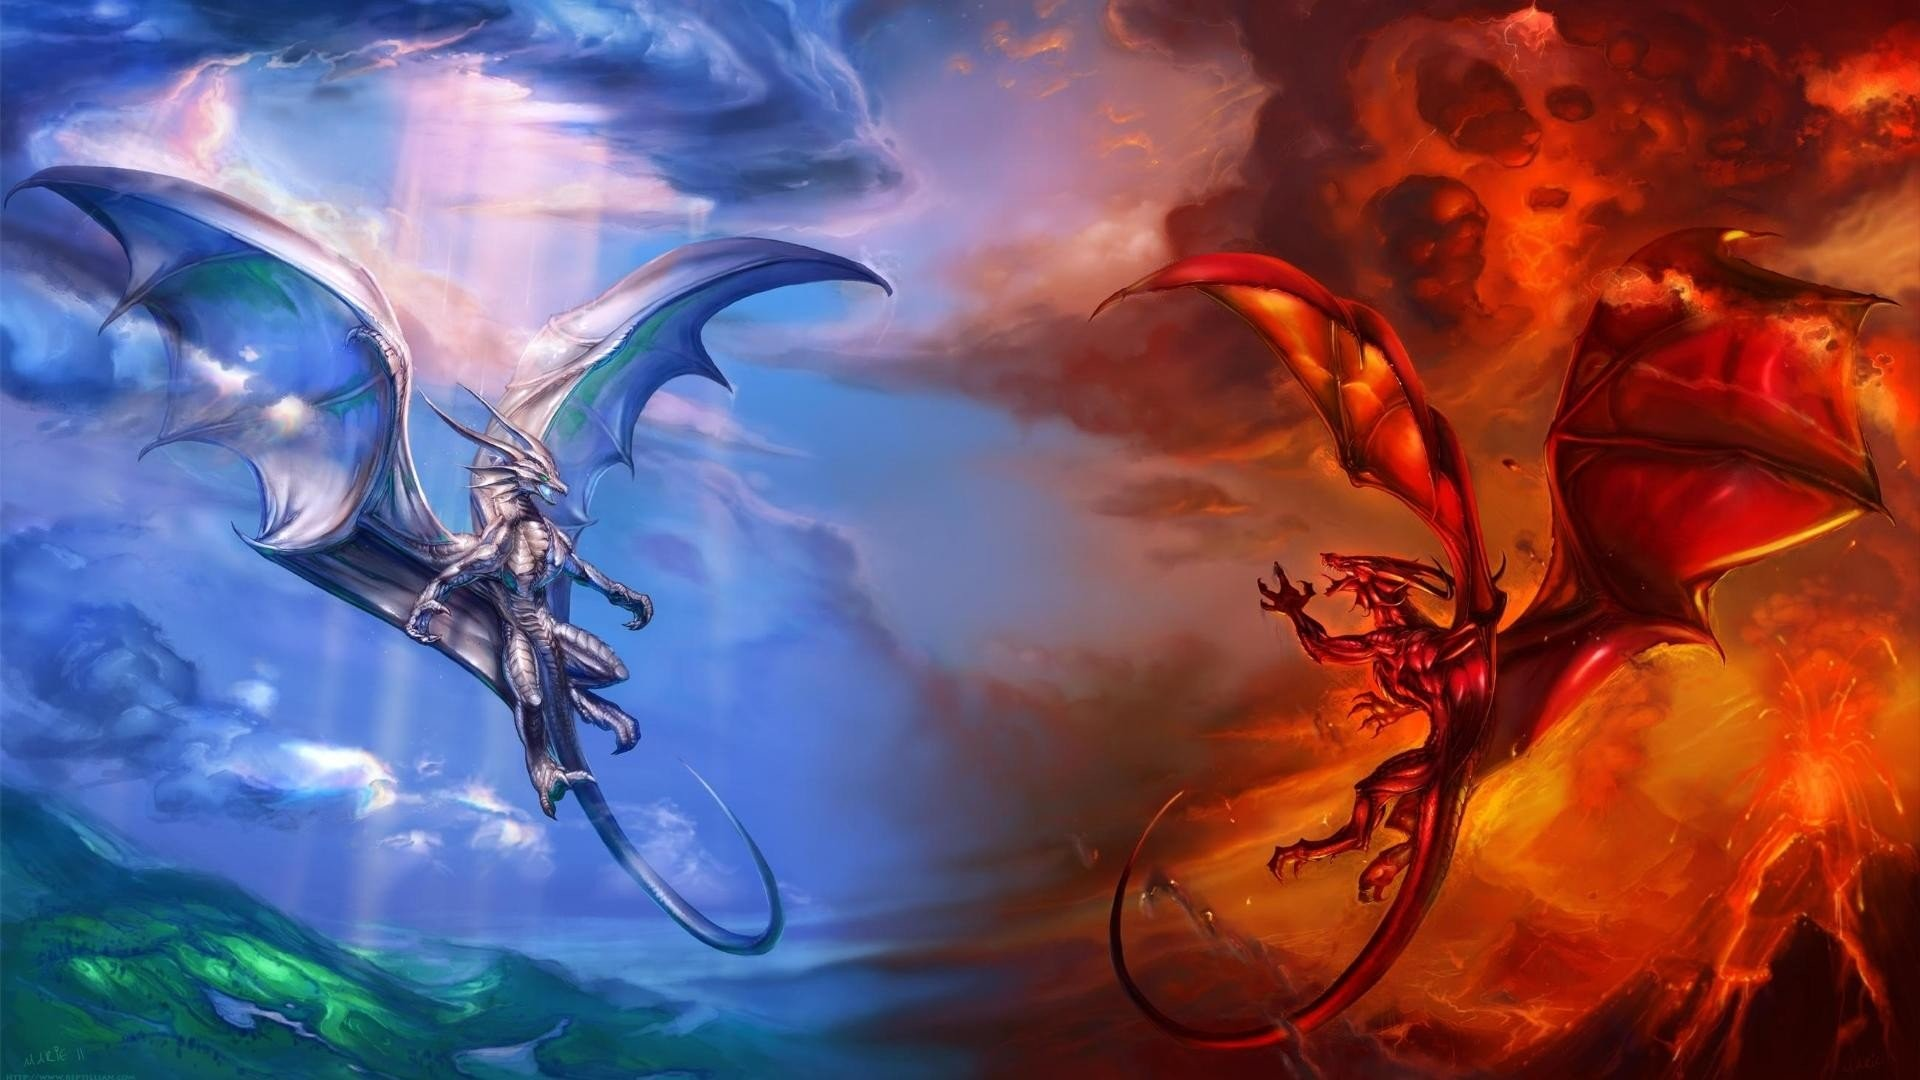 Res: 1920x1080, Fire Dragon S 3d Wallpapers Full Hd Is Cool Wallpapers